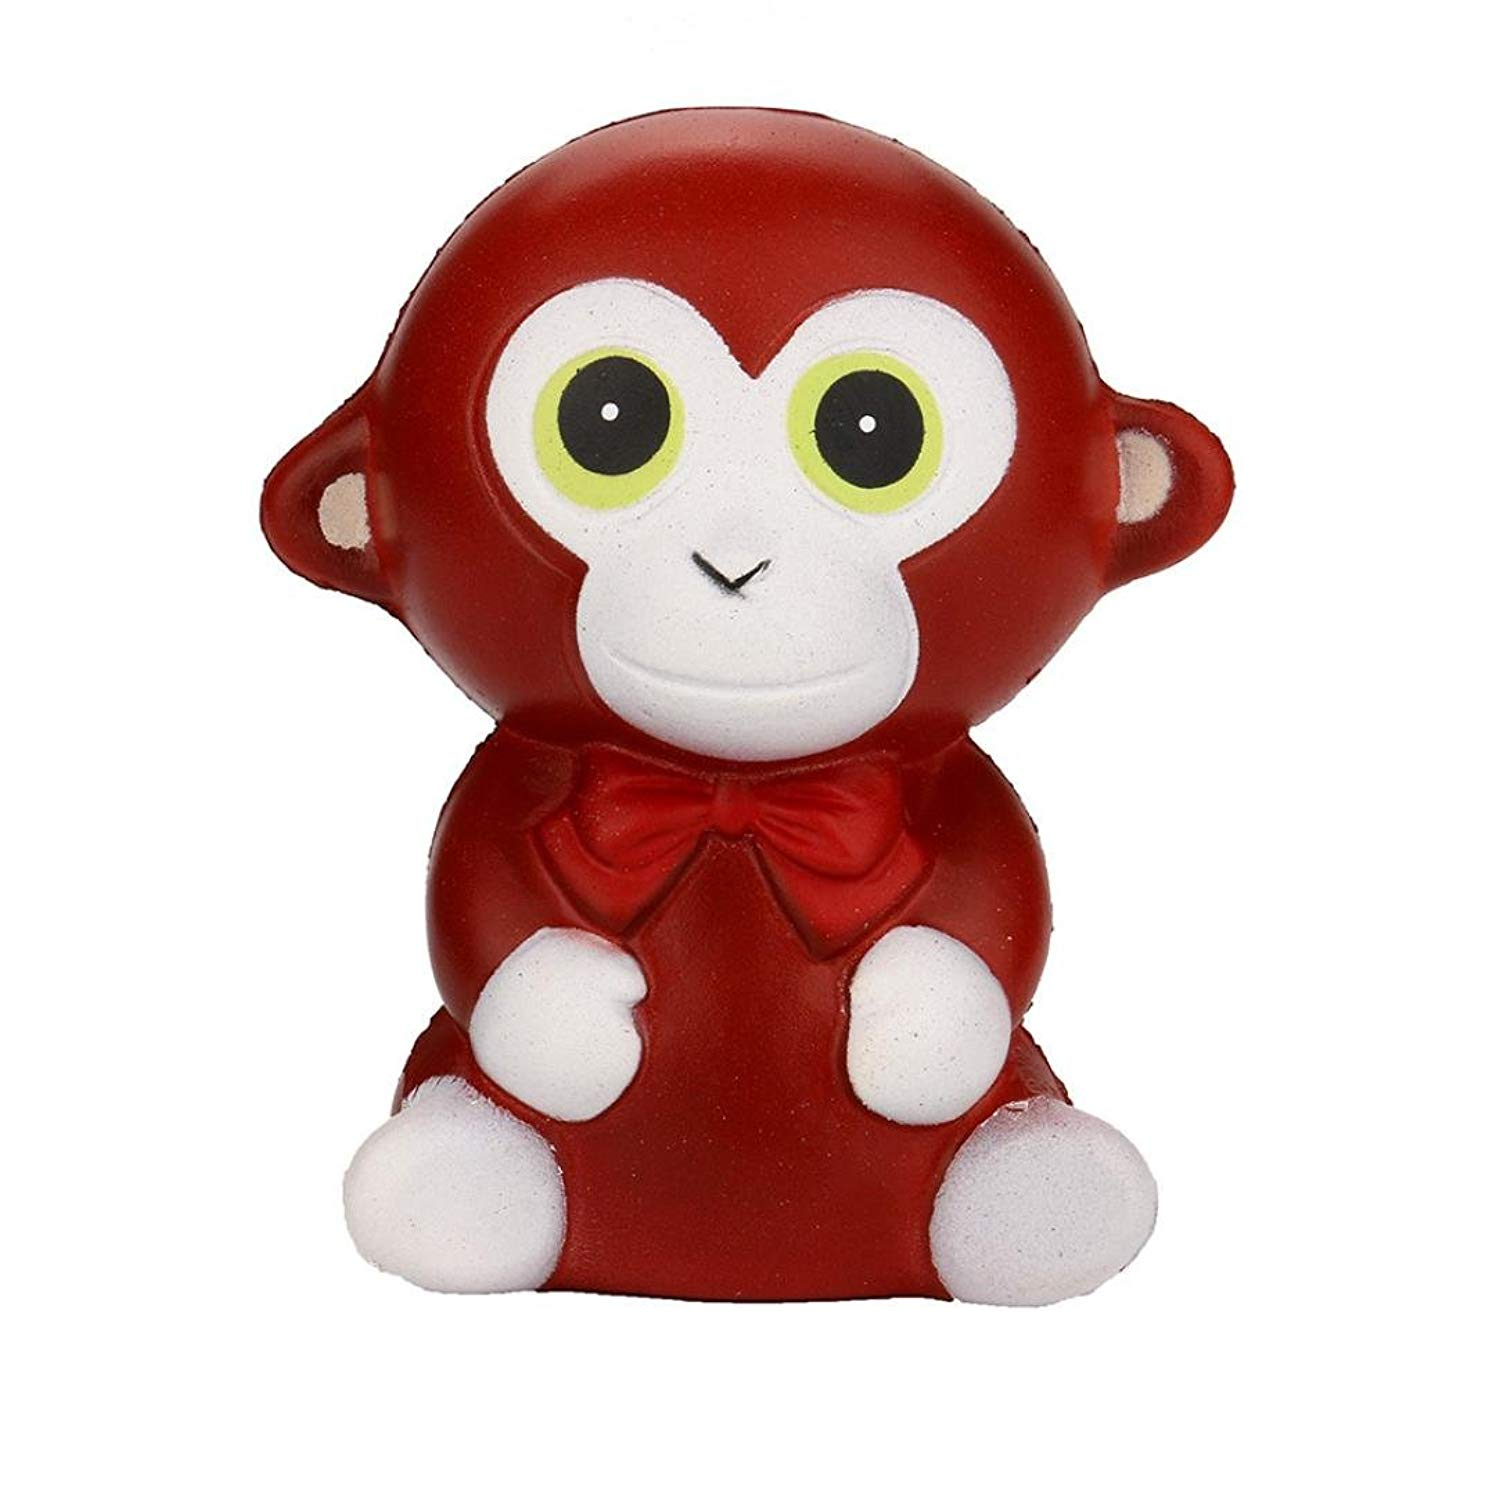 Malbaba Kawaii Jumbo Squeeze Monkey Cream Bread Scented Slow Rising Toys Phone Charm Gift for Kids and Adults